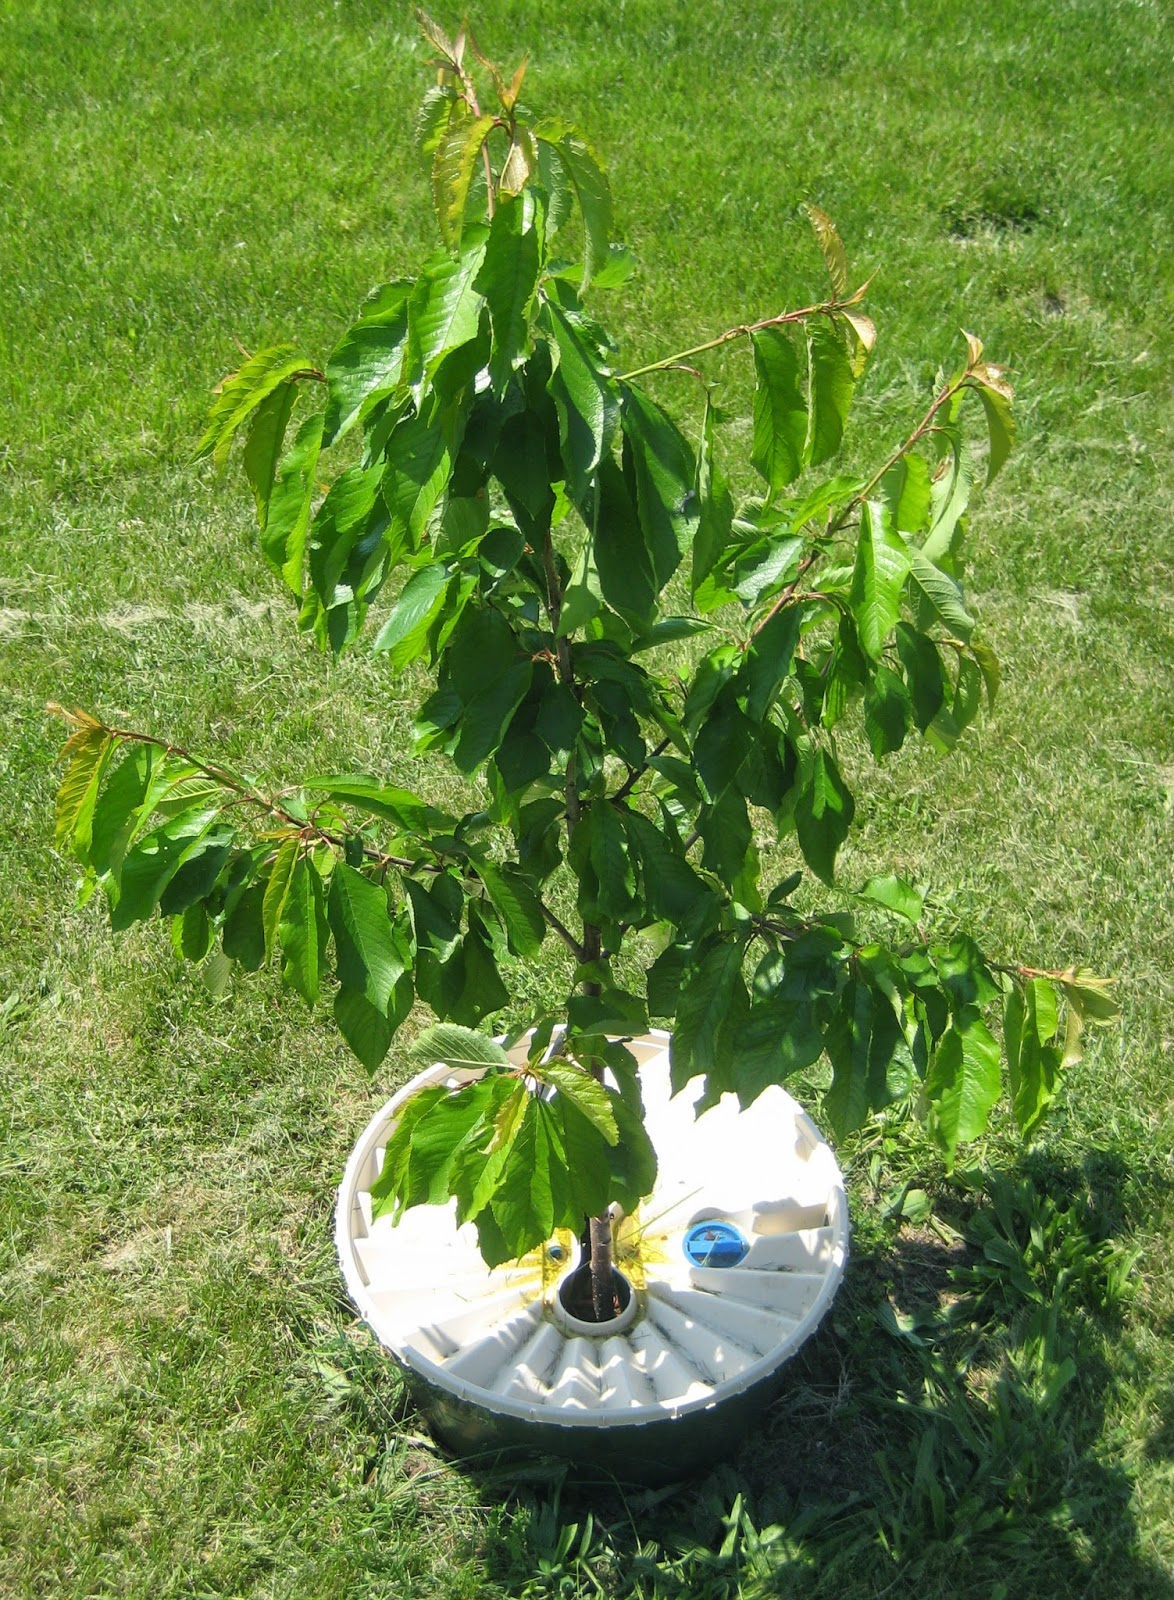 the arid arborist and gardener growing dwarf cherry trees, Natural flower